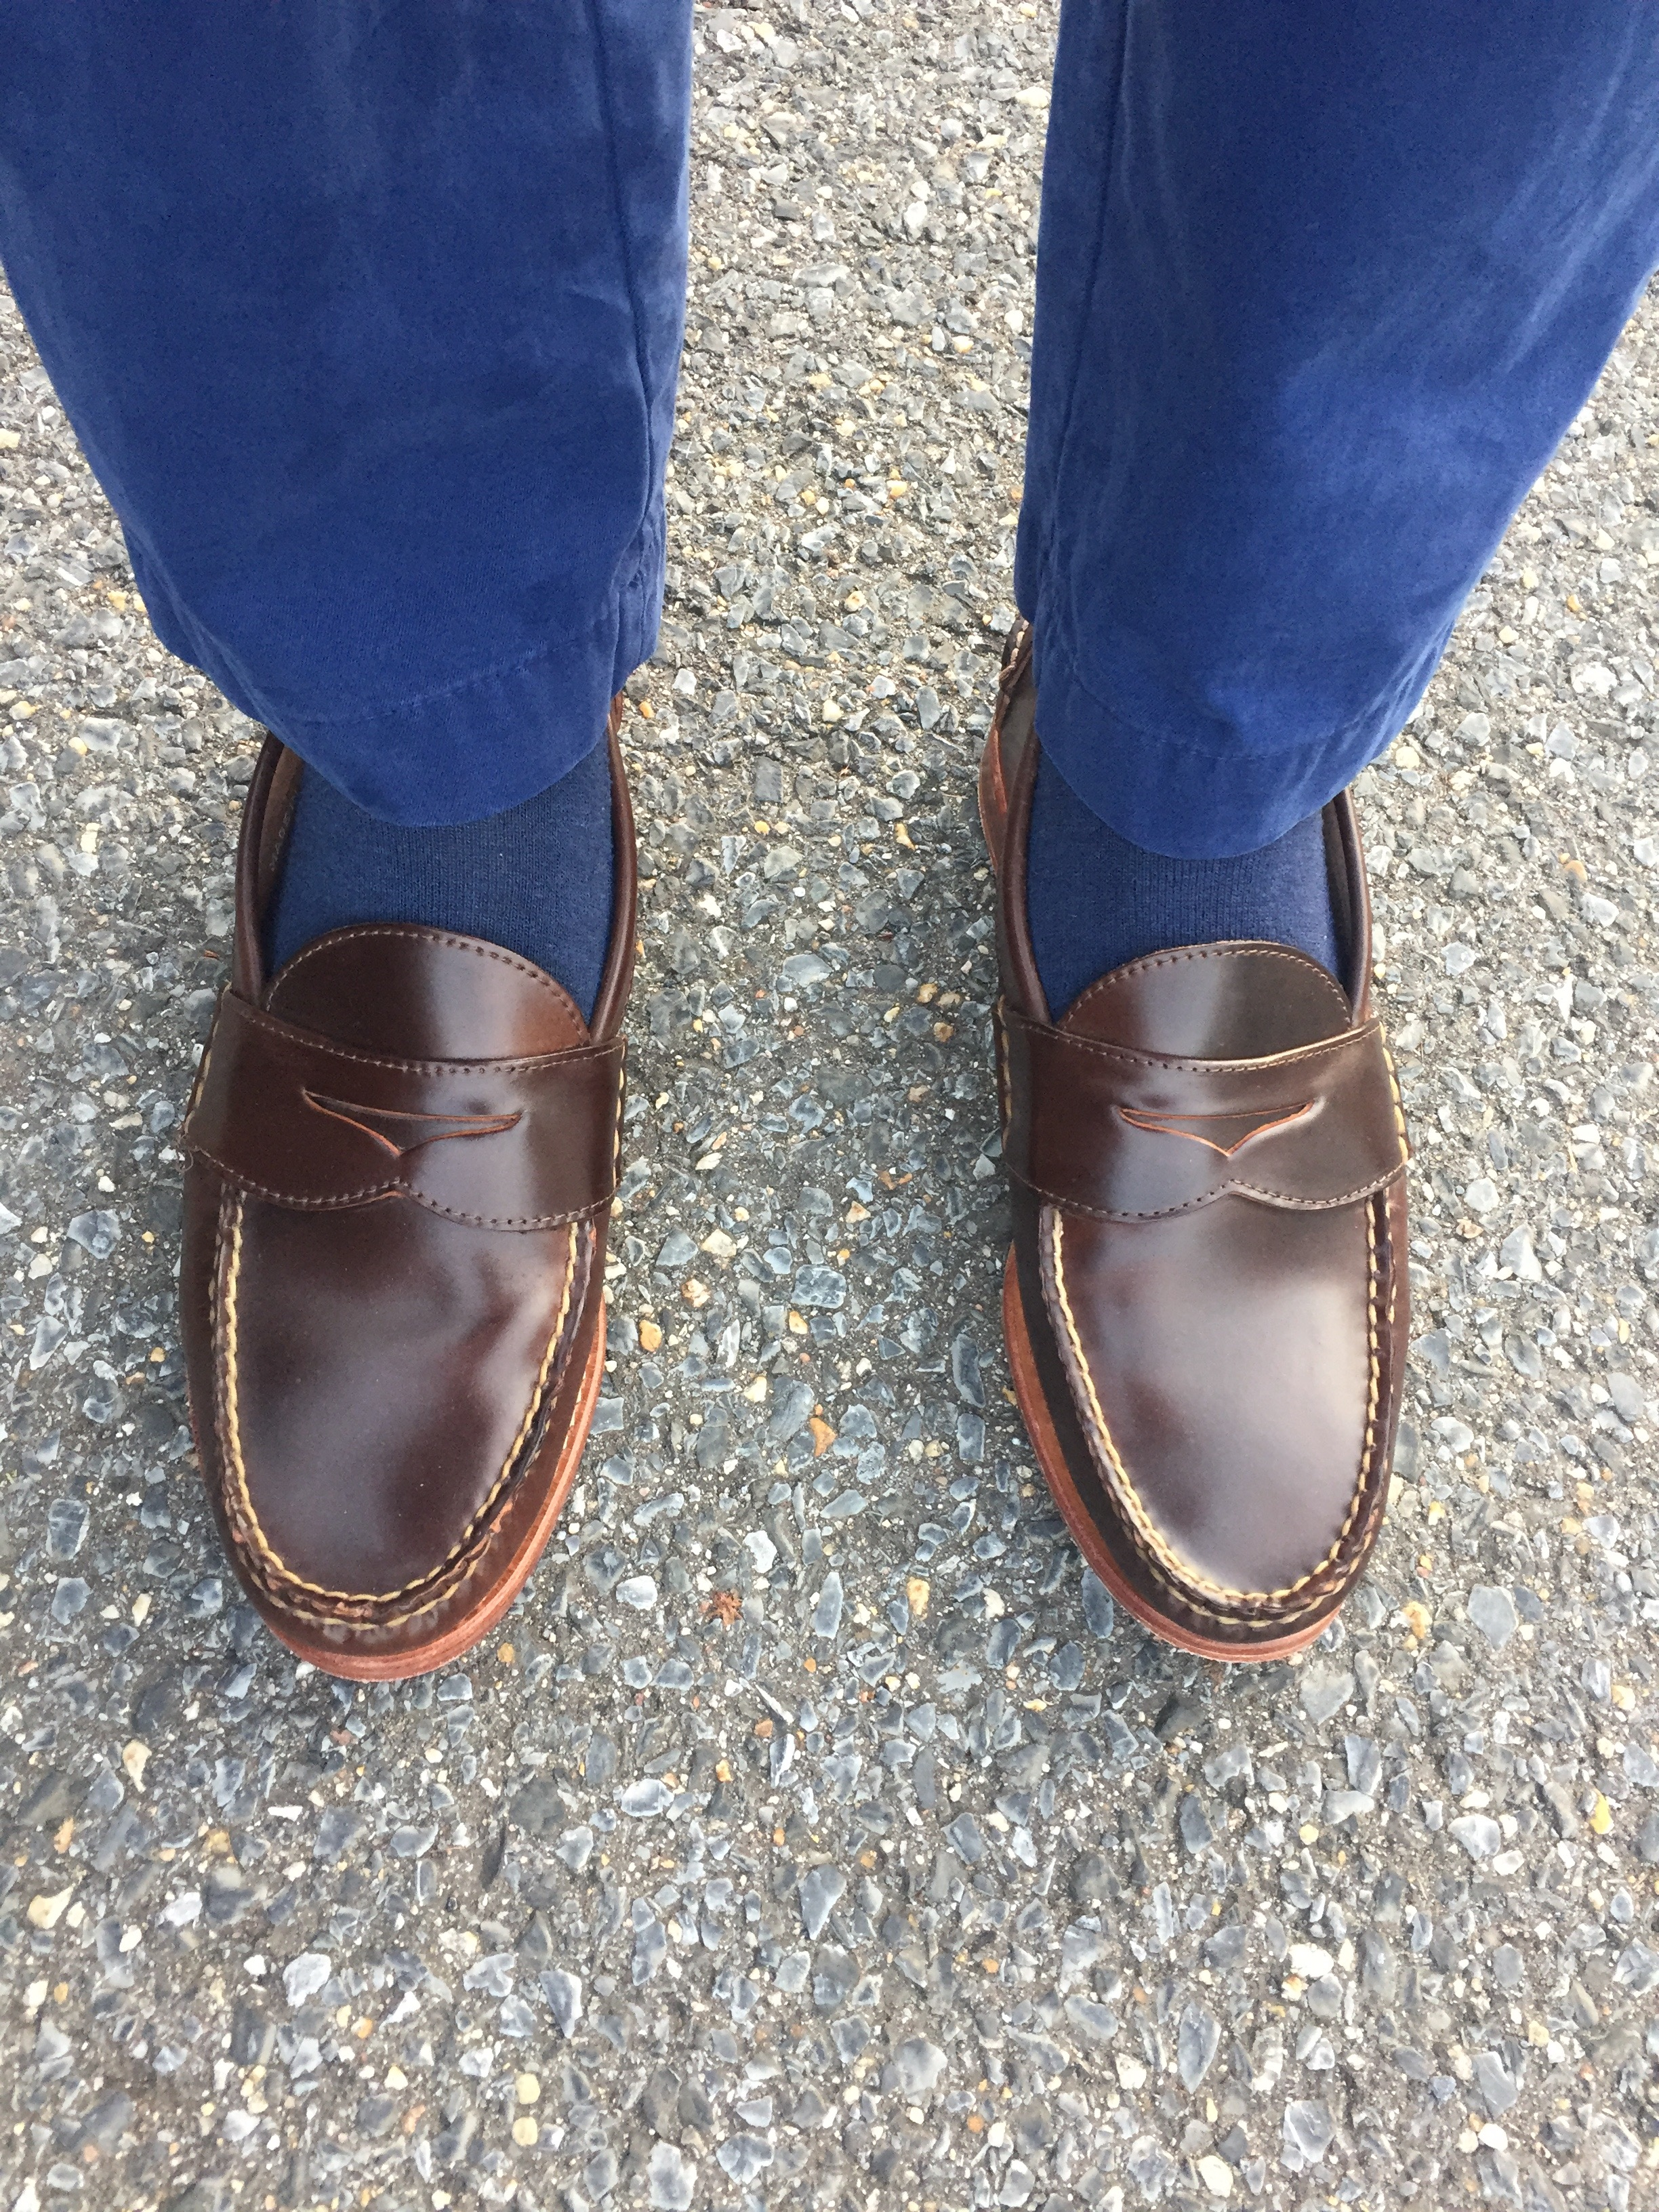 fdf64abb101 RANCOURT   Co. Shoes - Made in Maine